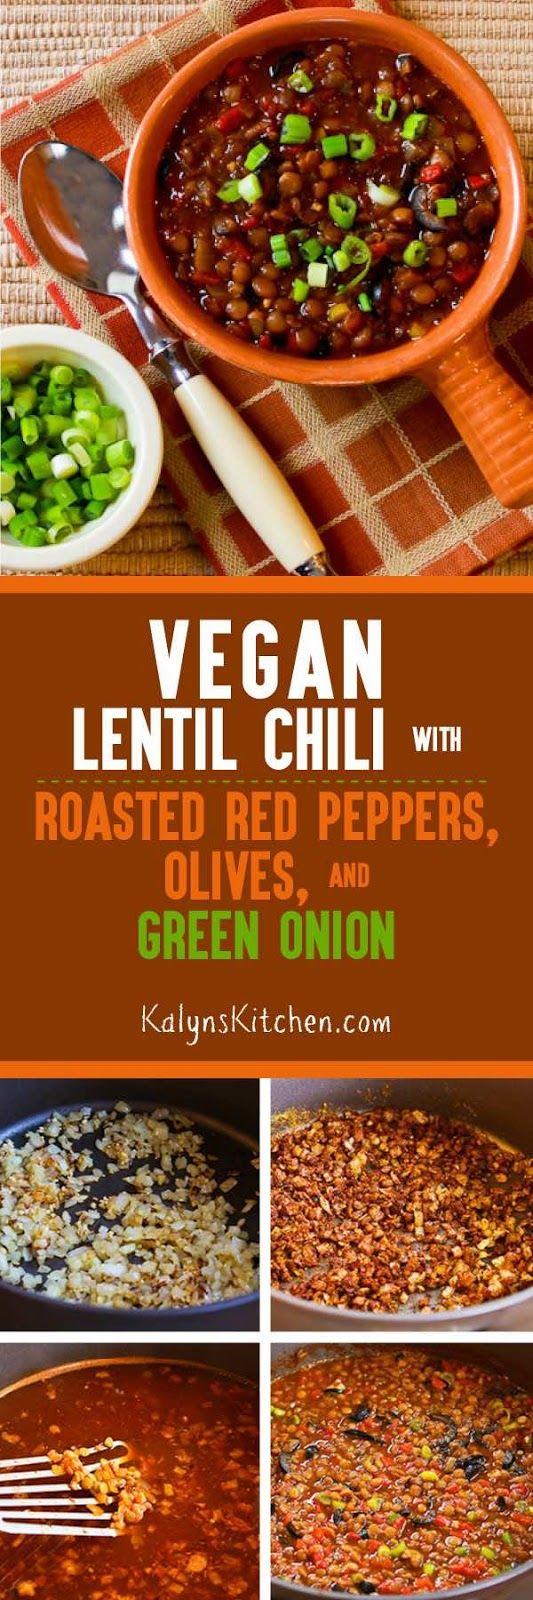 Vegan Lentil Chili with Roasted Red Peppers, Olives, and ...